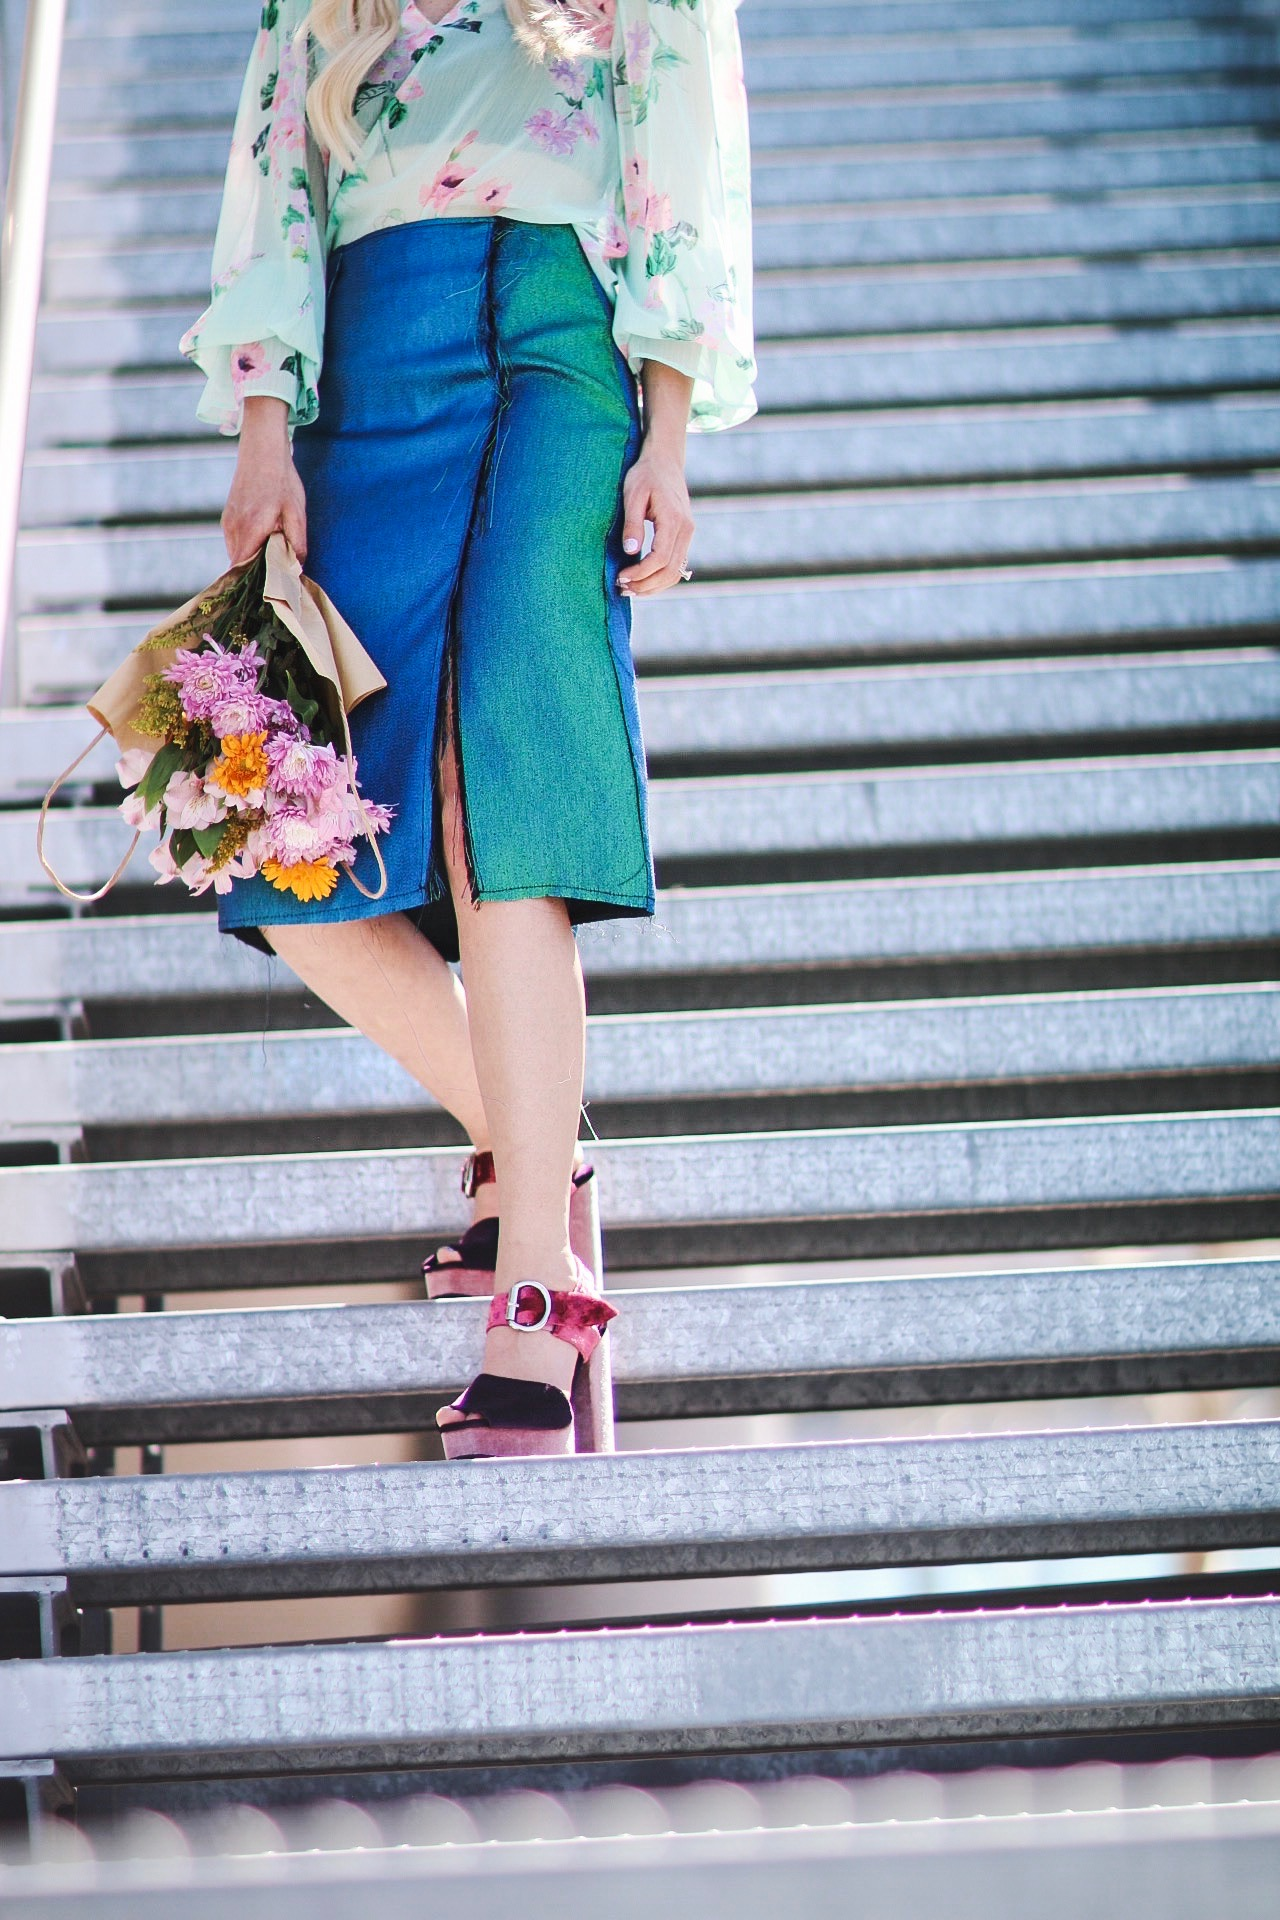 Alena Gidenko of modaprints.com styles a mermaid pencil skirt with a floral top for Spring